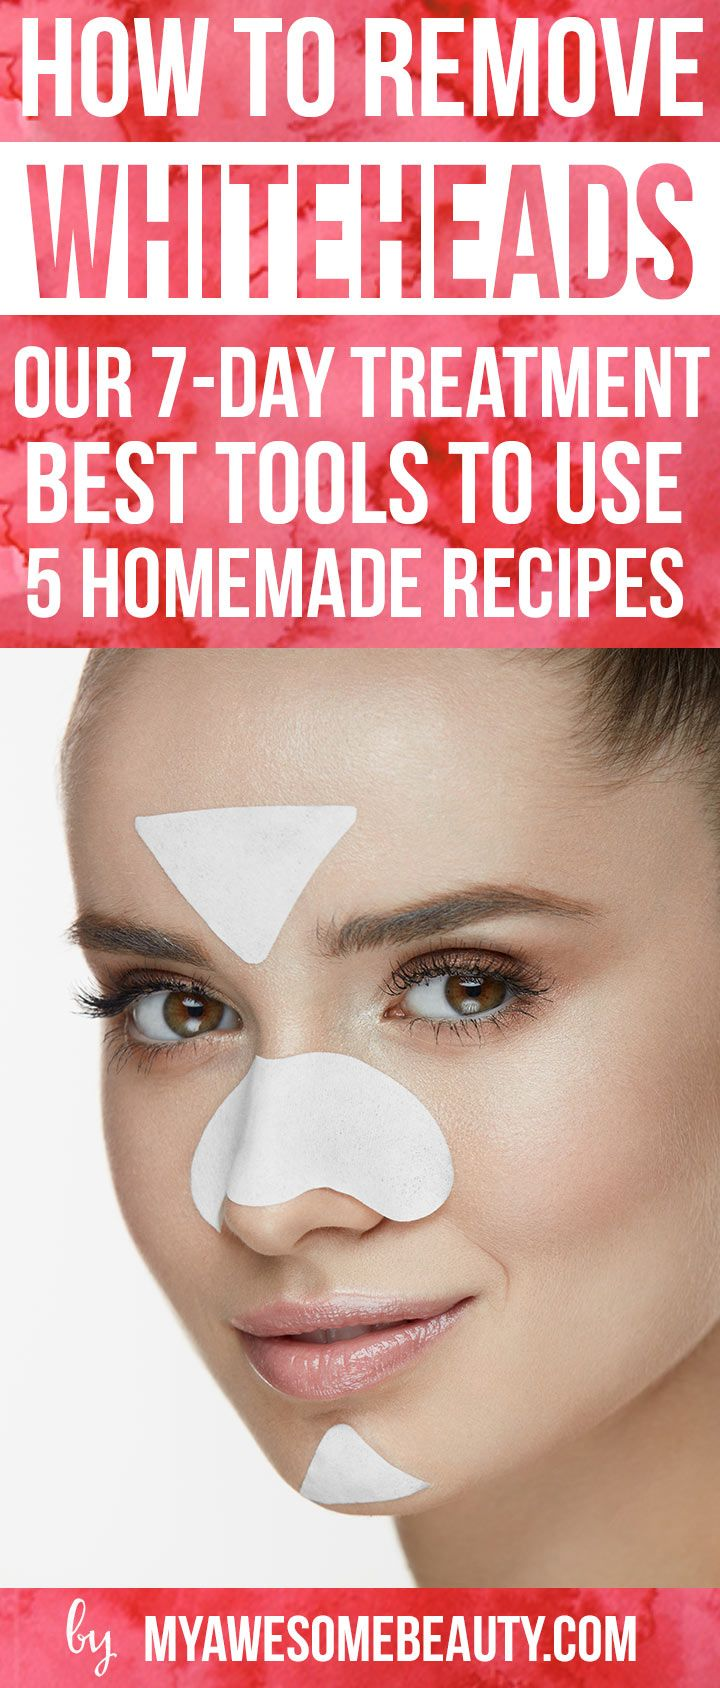 how to avoid blackheads and whiteheads